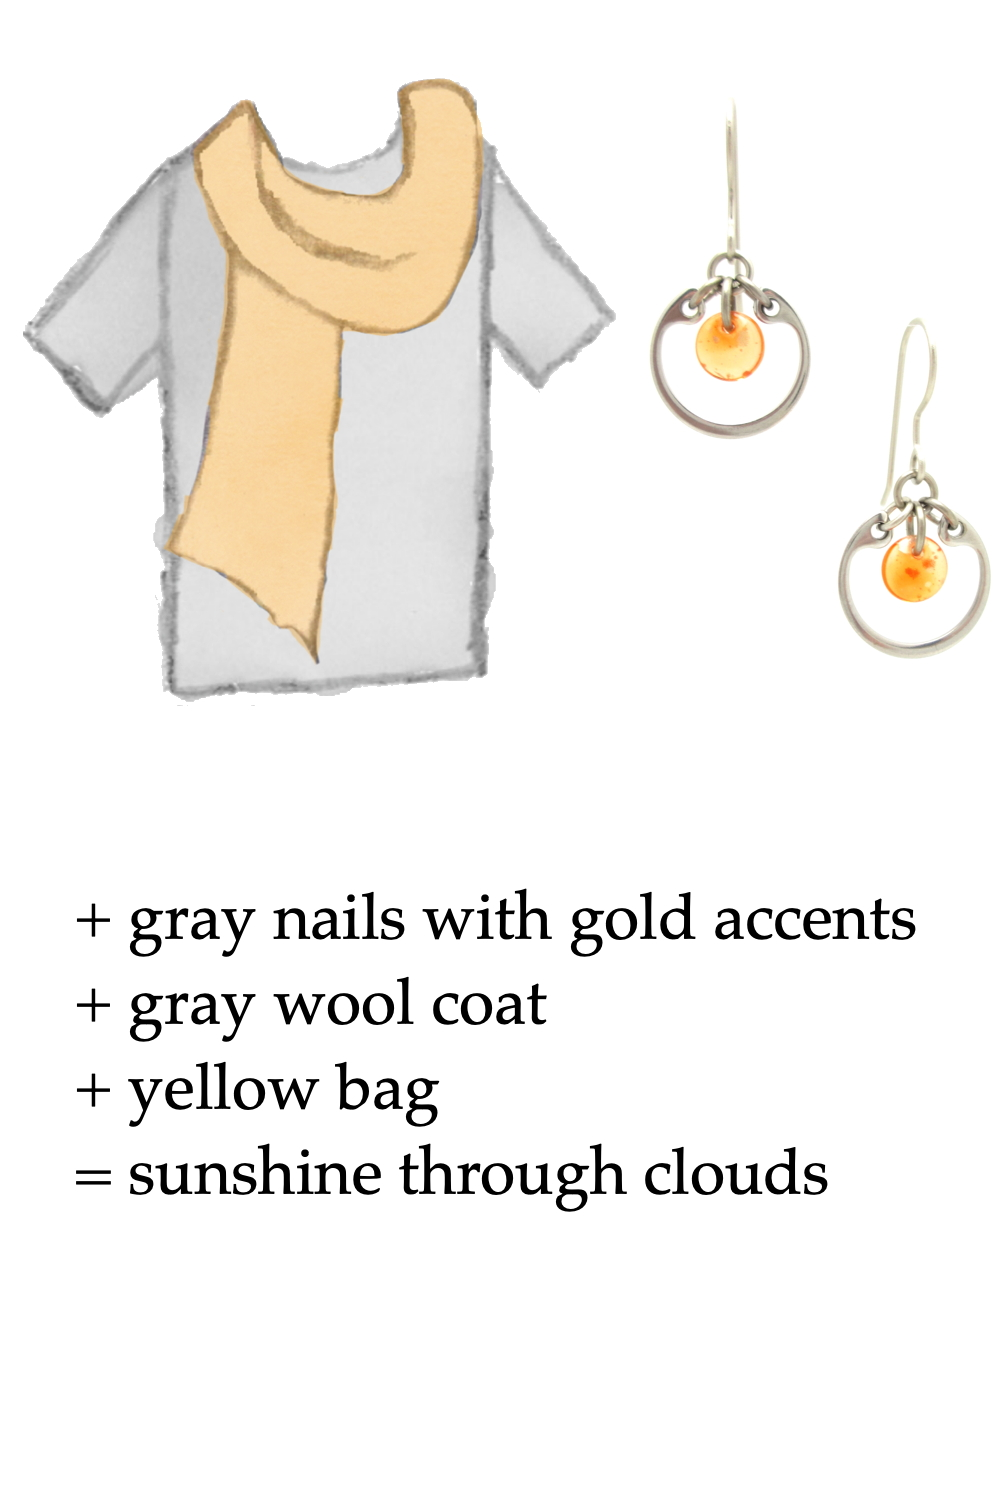 style sketch of a gray tee + pale gold scarf + orange modern circle earrings; text says + gray nails with gold accents + gray wool coat + yellow bag = sunshine through clouds